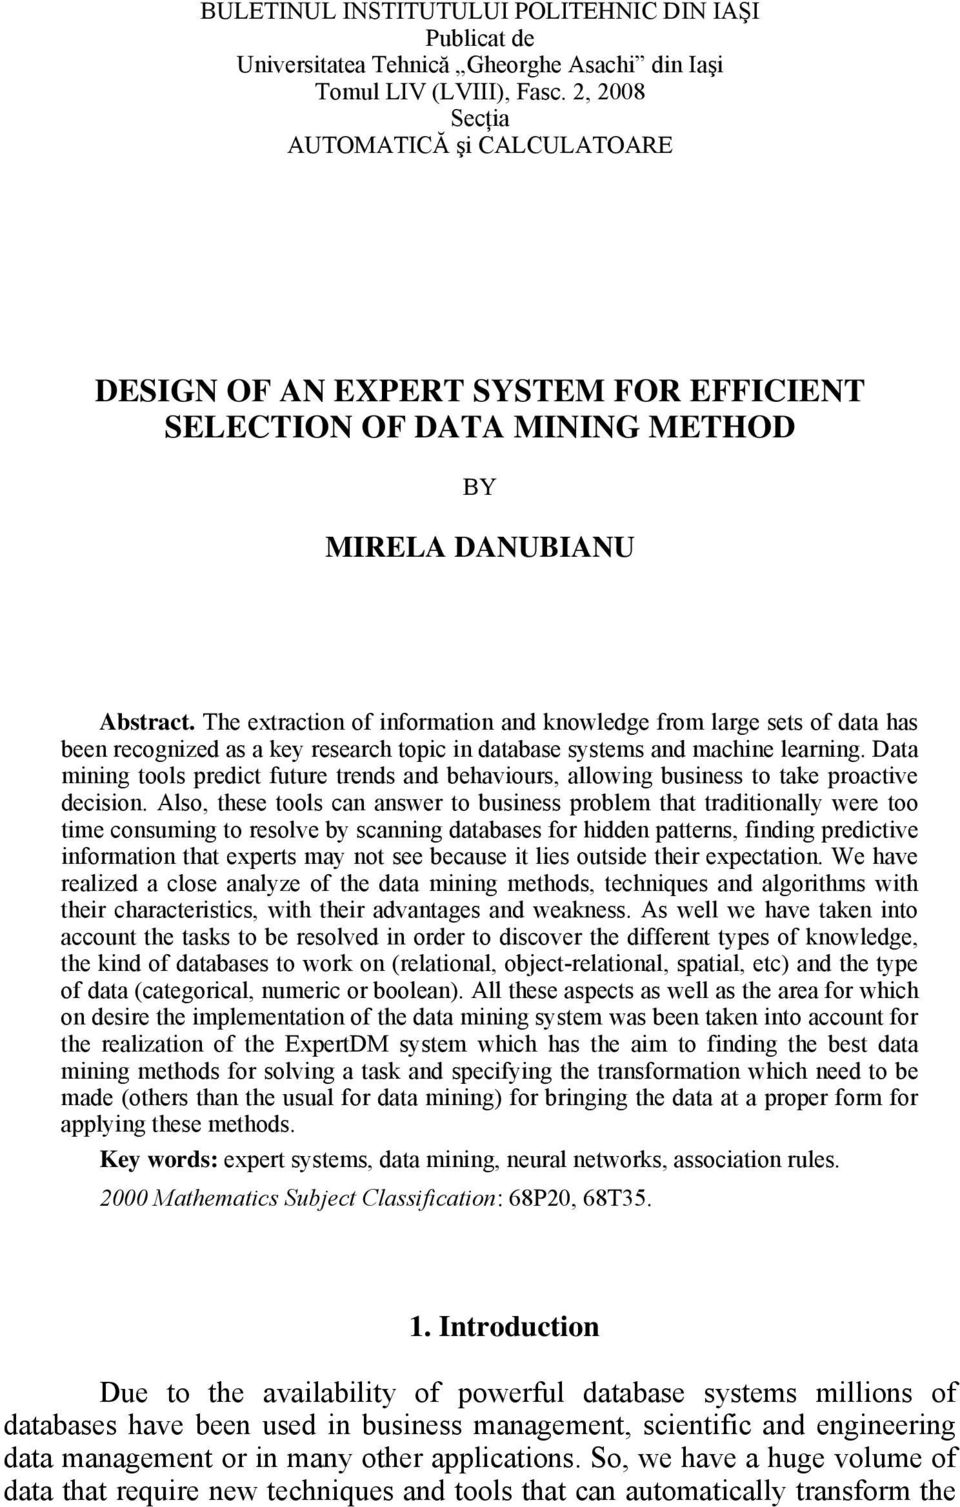 The extraction of information and knowledge from large sets of data has been recognized as a key research topic in database systems and machine learning.